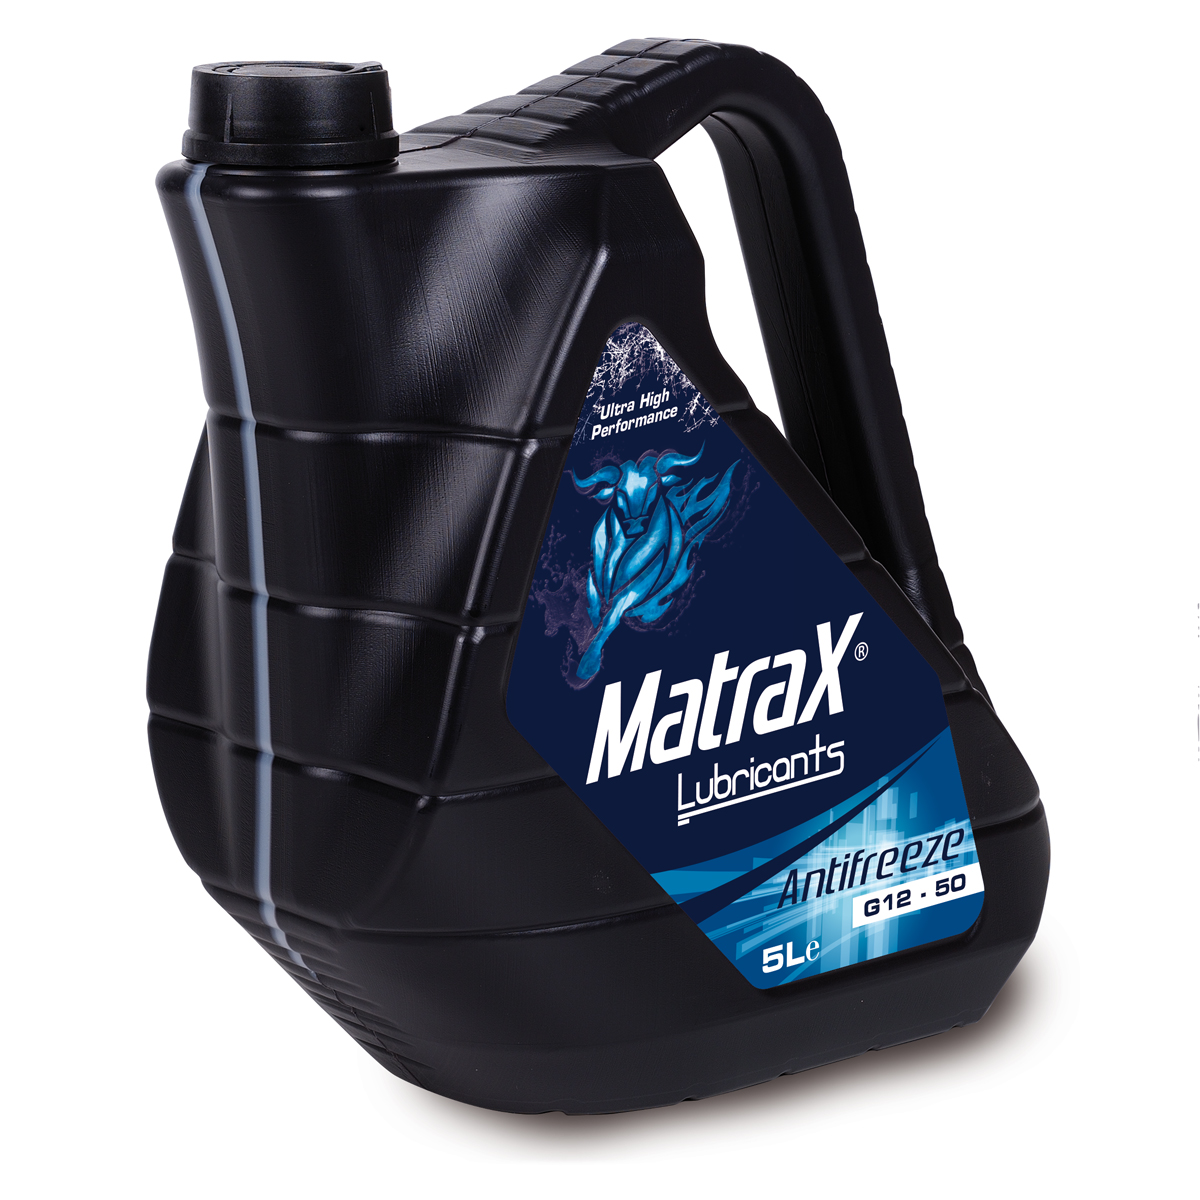 matrax-lubricants-antifreeze-g12-50-5l